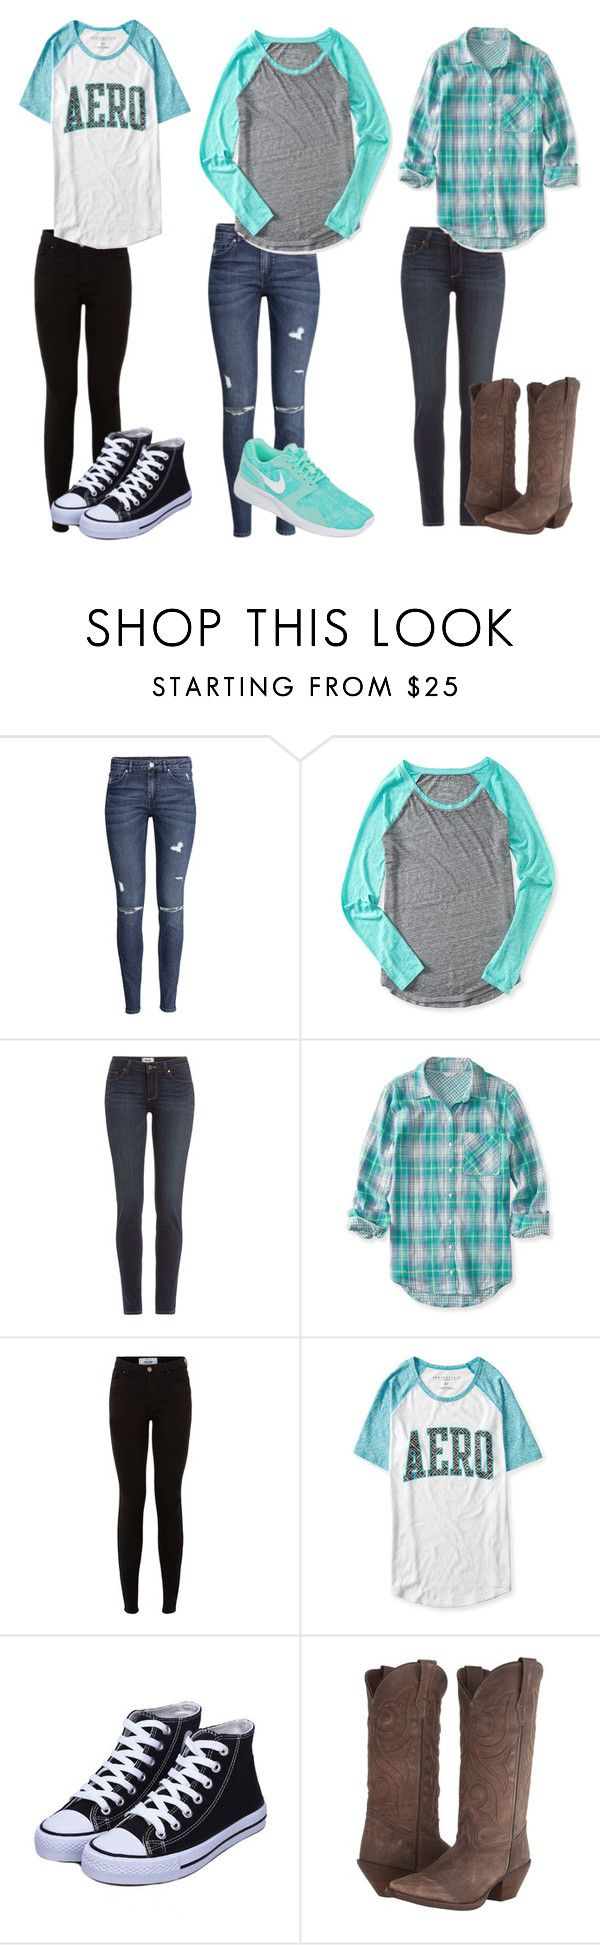 """Aeropostale - 3 Outfits"" by kirracat123 ❤ liked on Polyvore featuring H&M, Aéropostale, Paige Denim, New Look, Durango, NIKE, beoriginal and aeropostale"